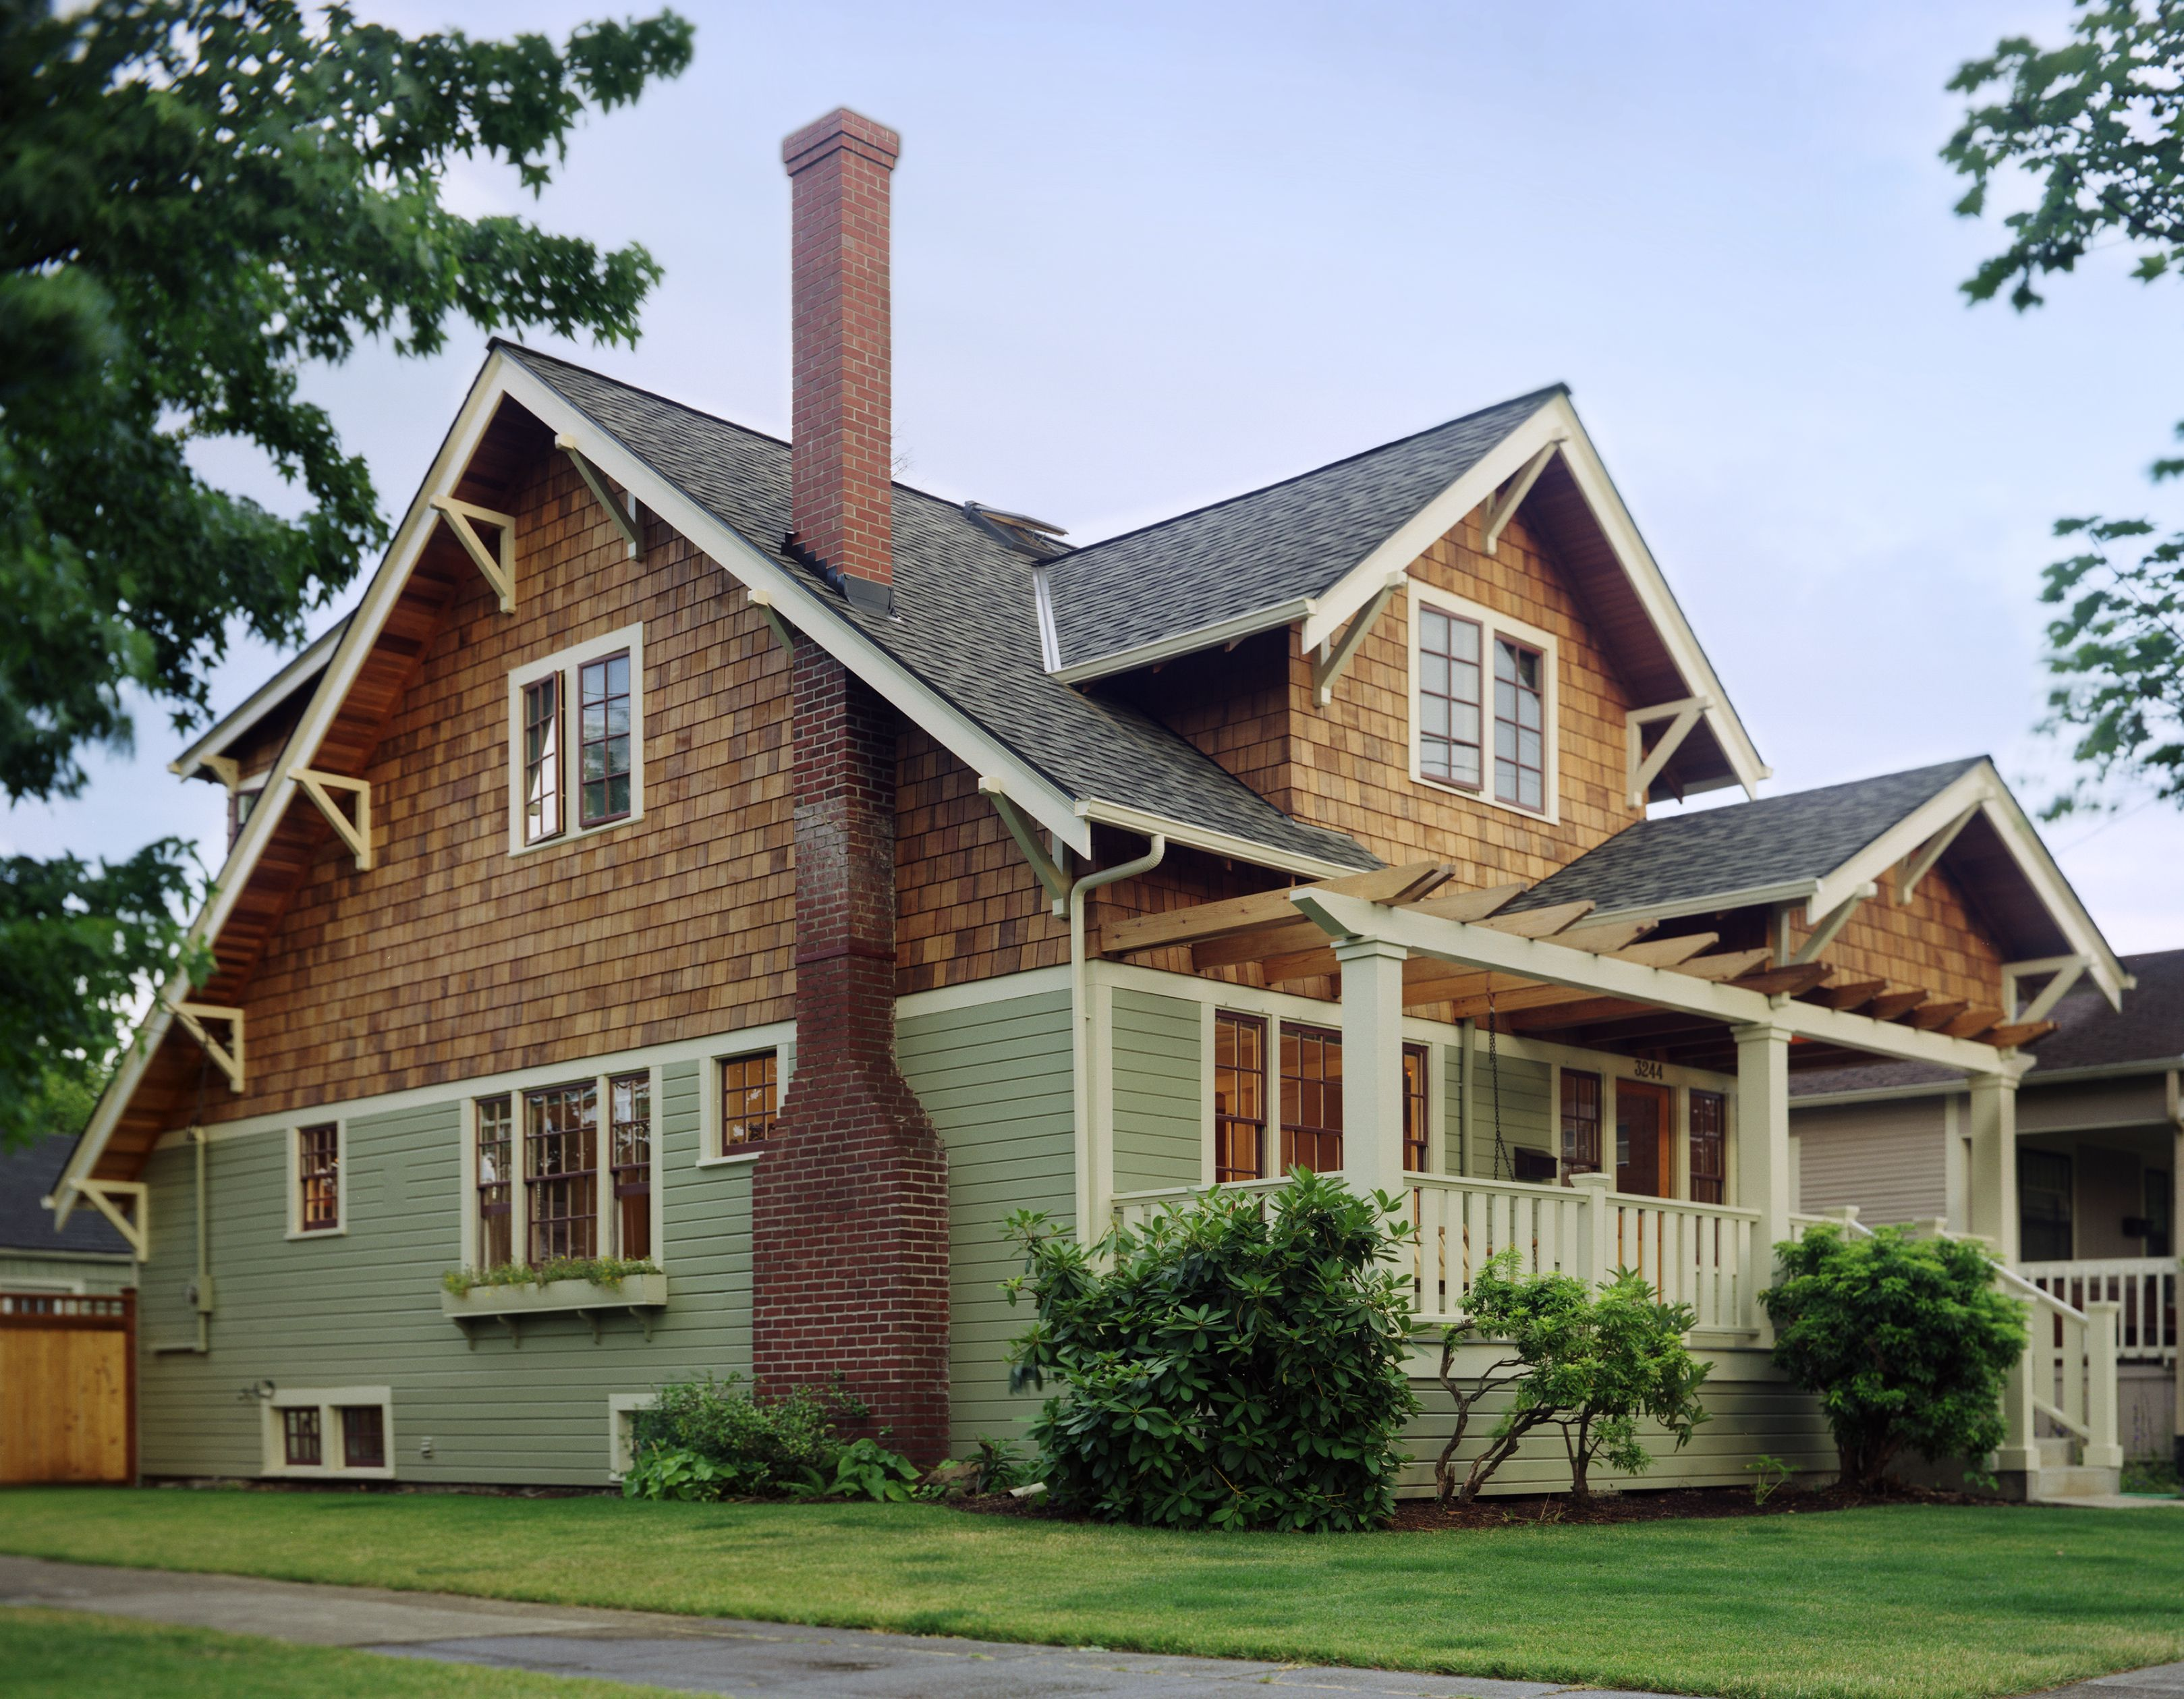 Pacific northwest architecture craftsman style house not for Northwest style house plans